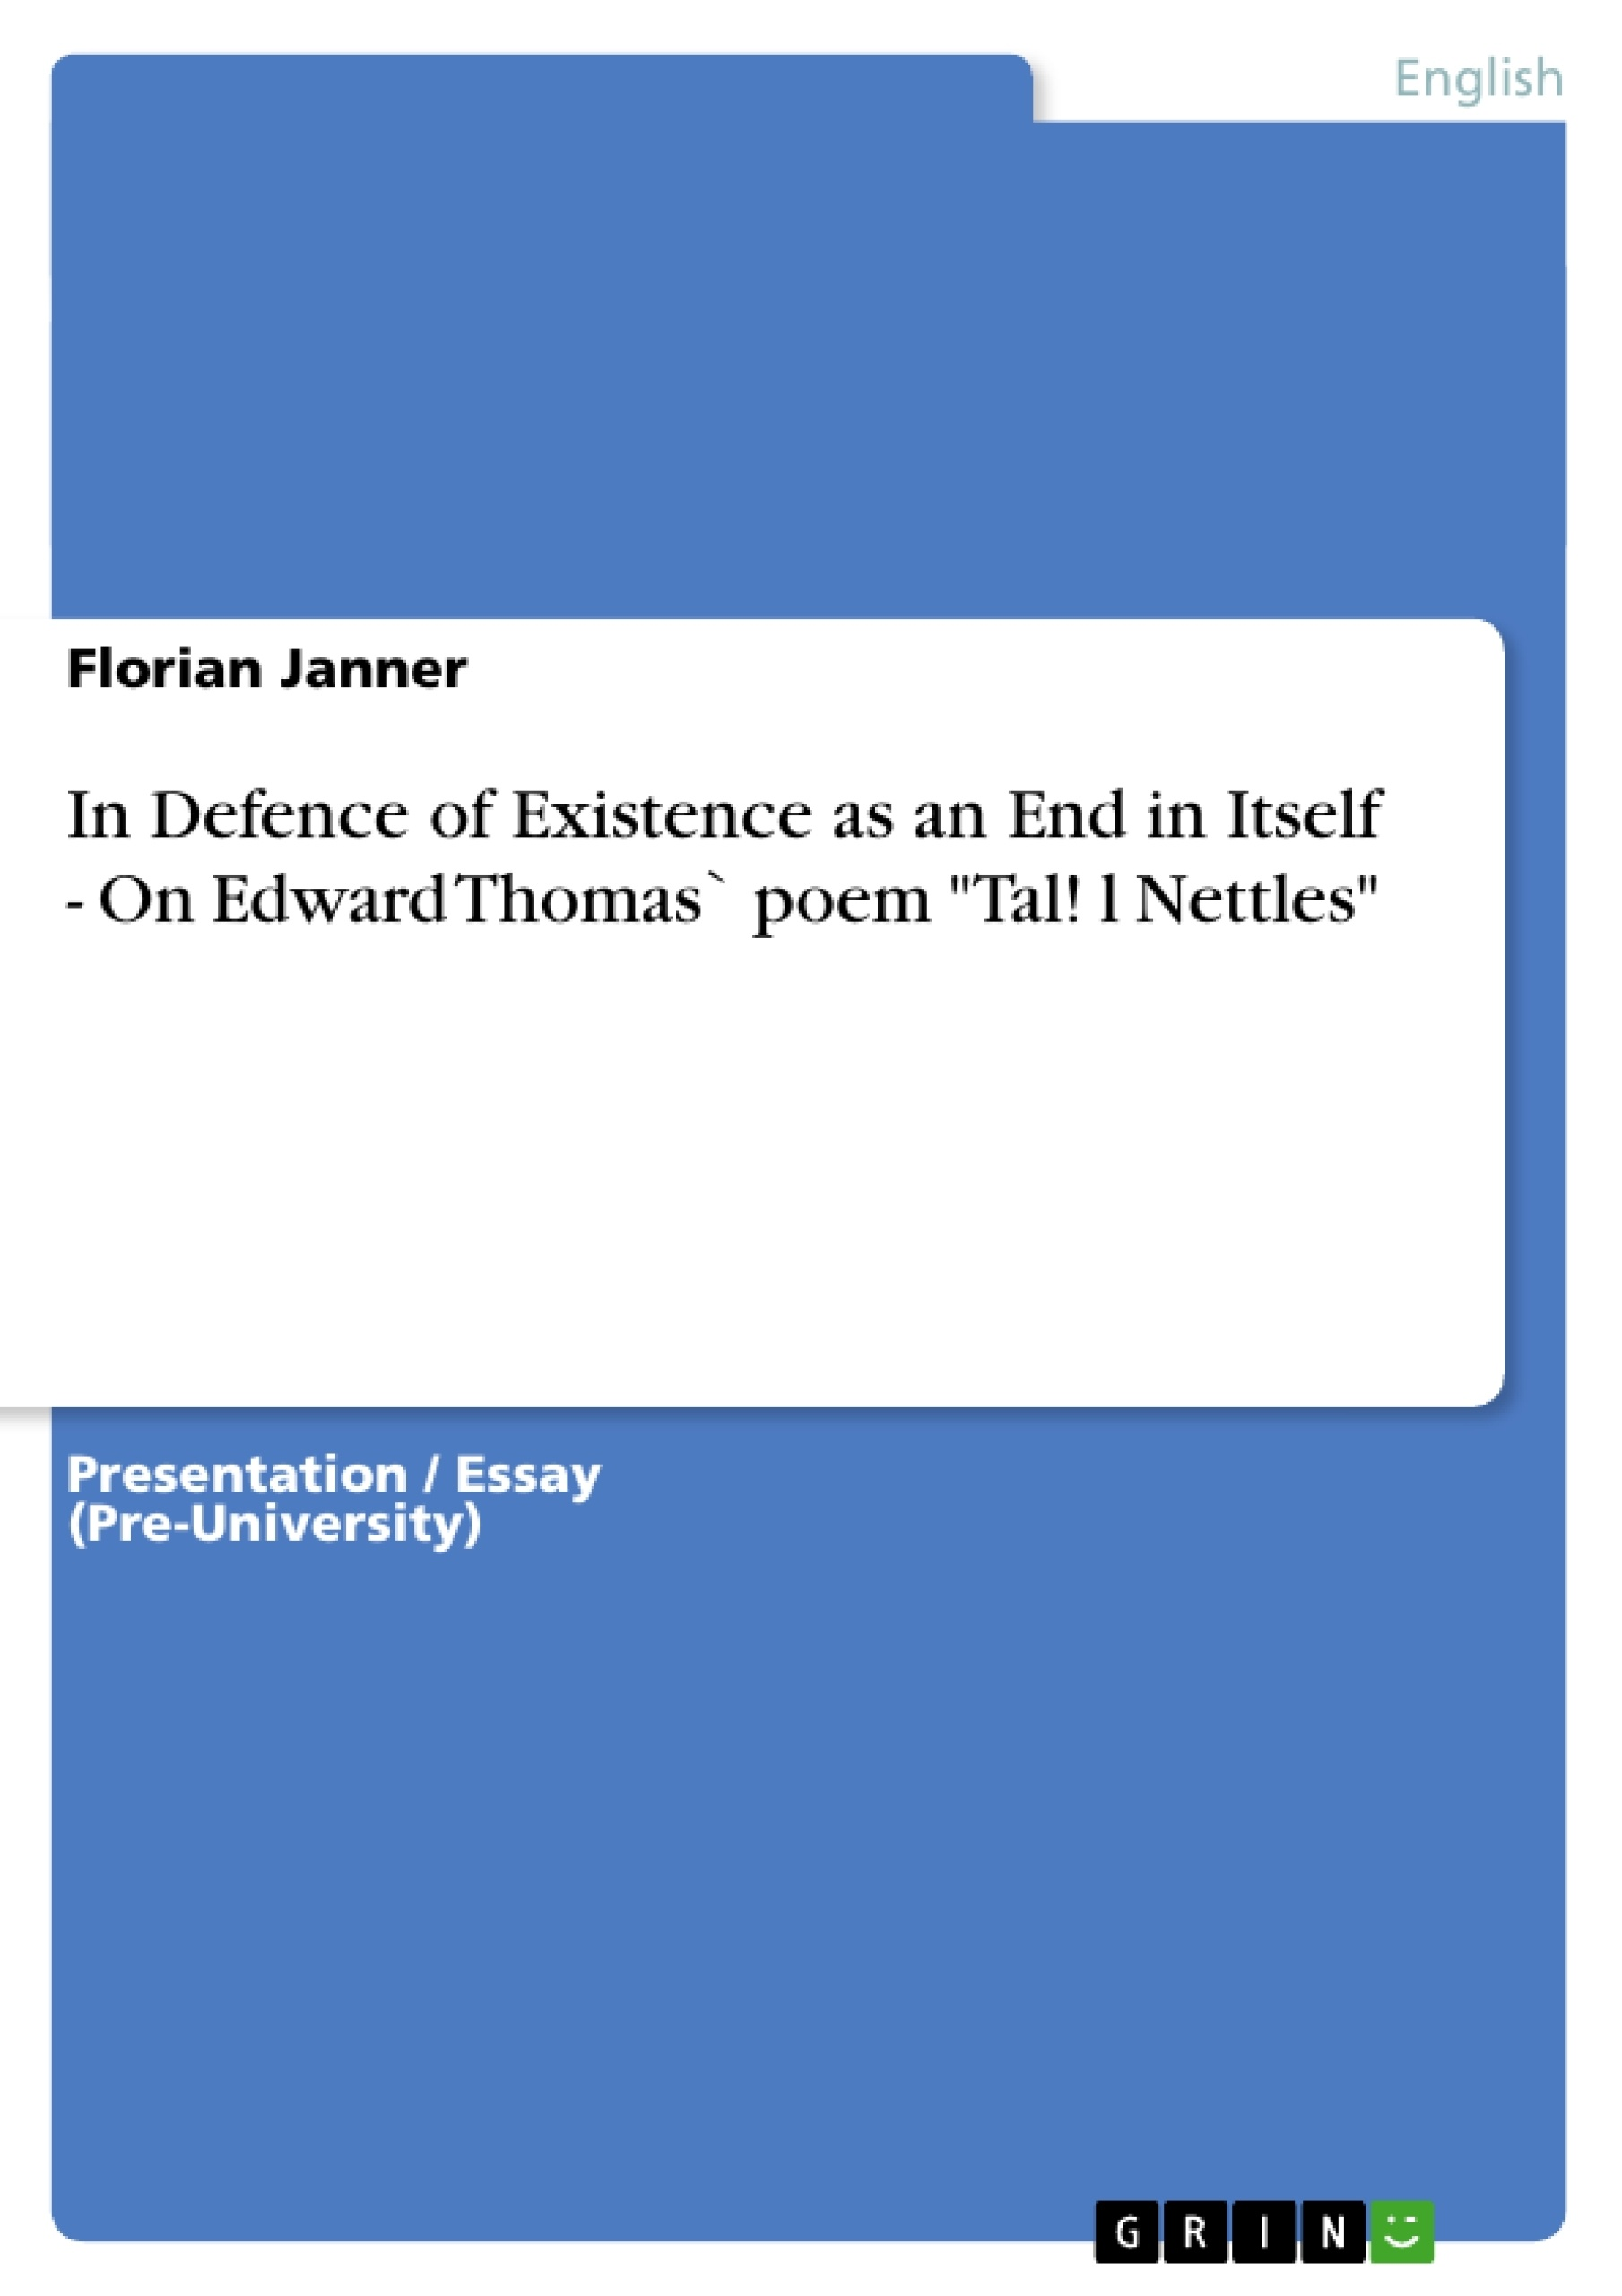 012 97561 0 Essay Example Nettles Wonderful Poem Analysis Tall Annotated Full